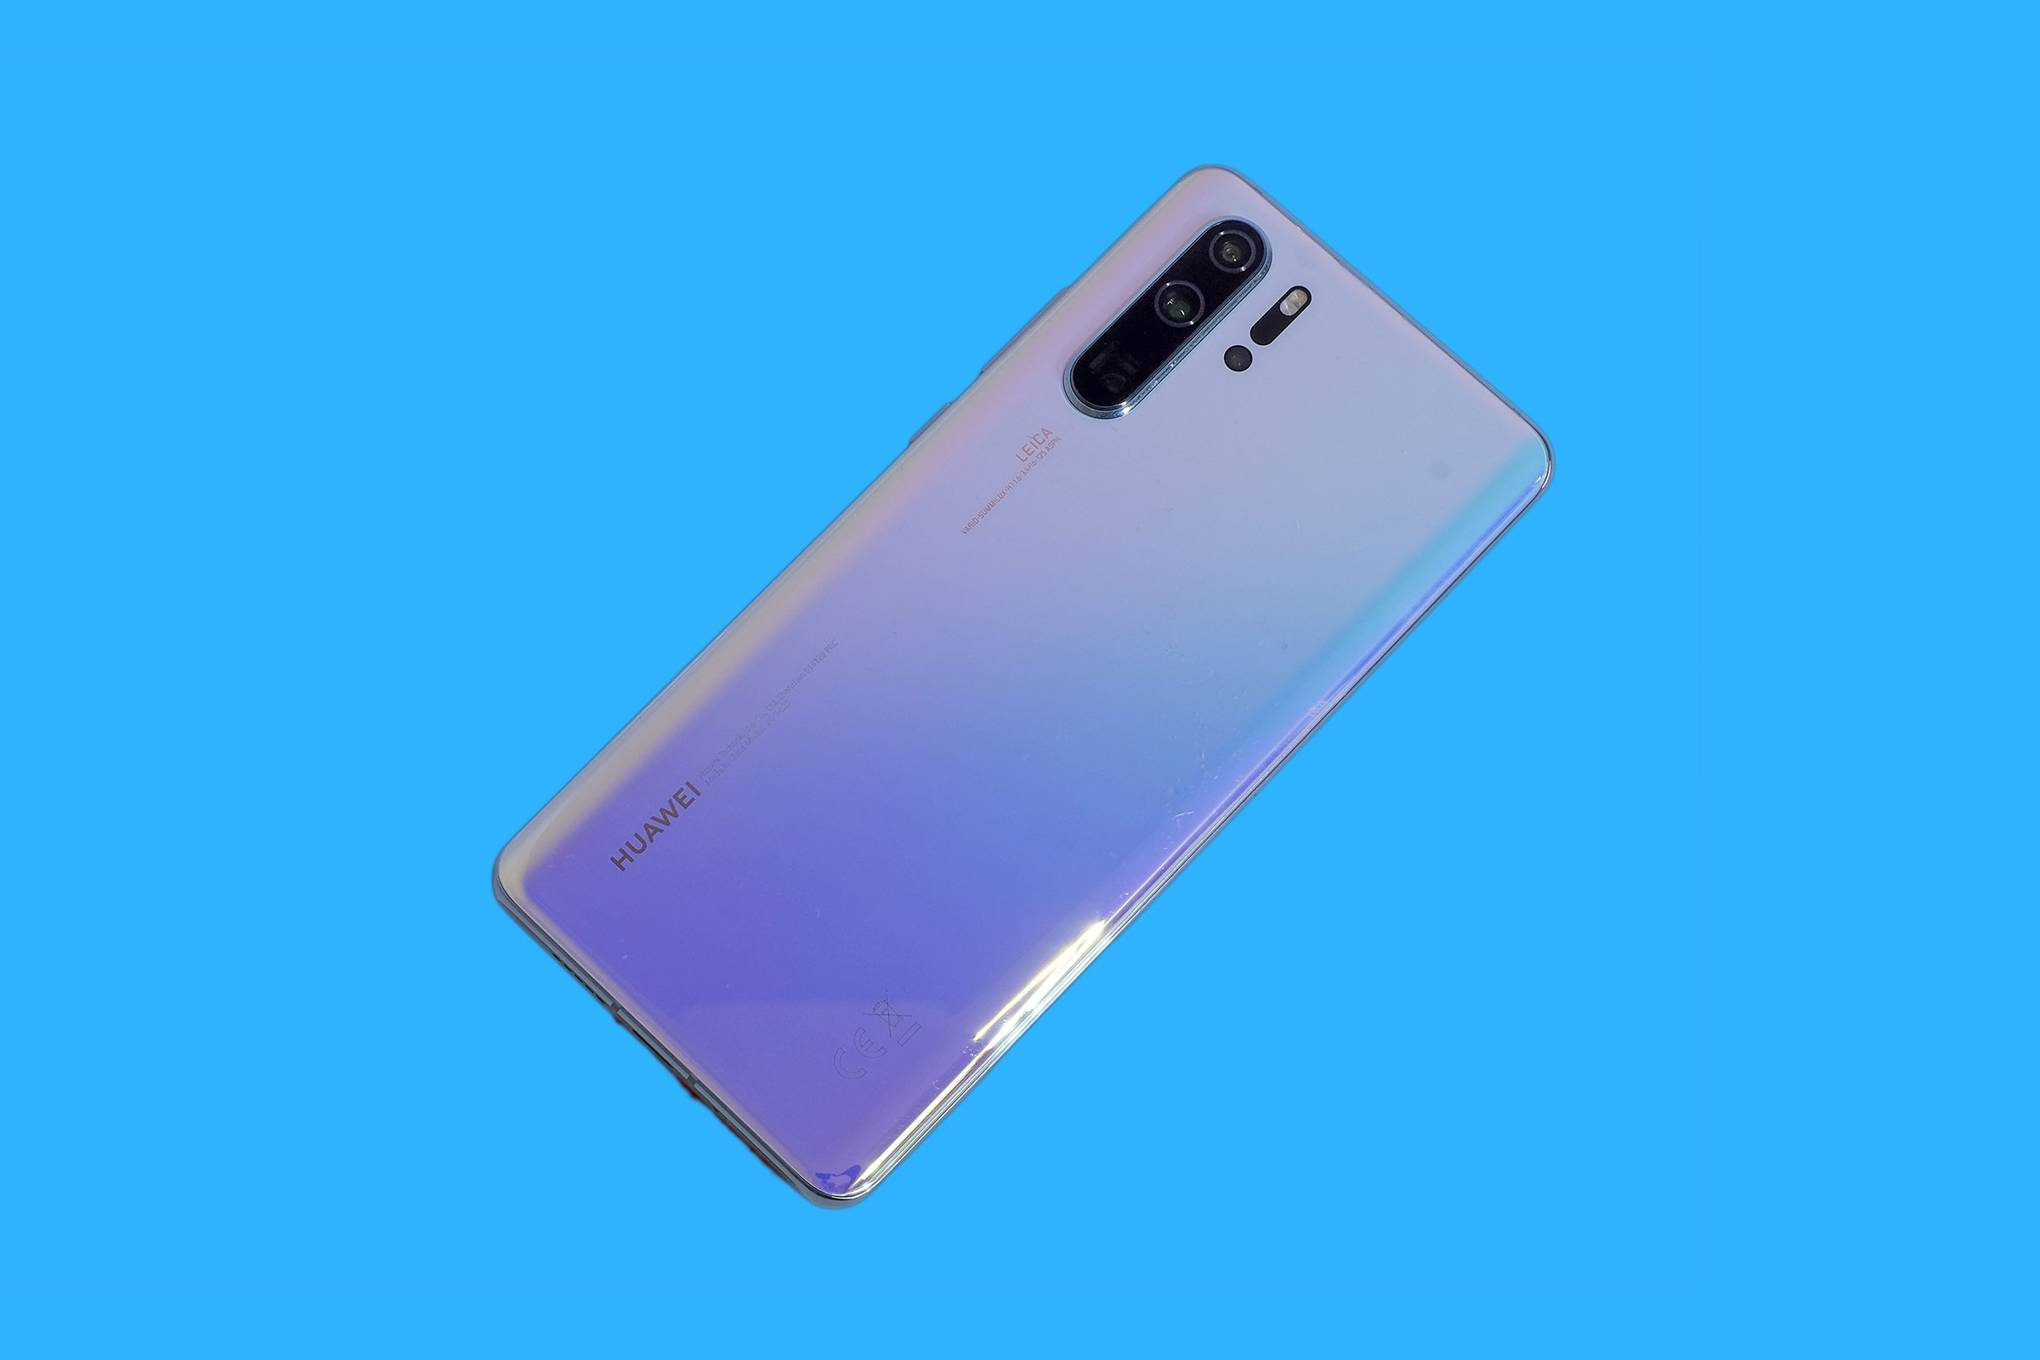 Huawei P30 Pro review: a worthy competitor for the Galaxy S10+